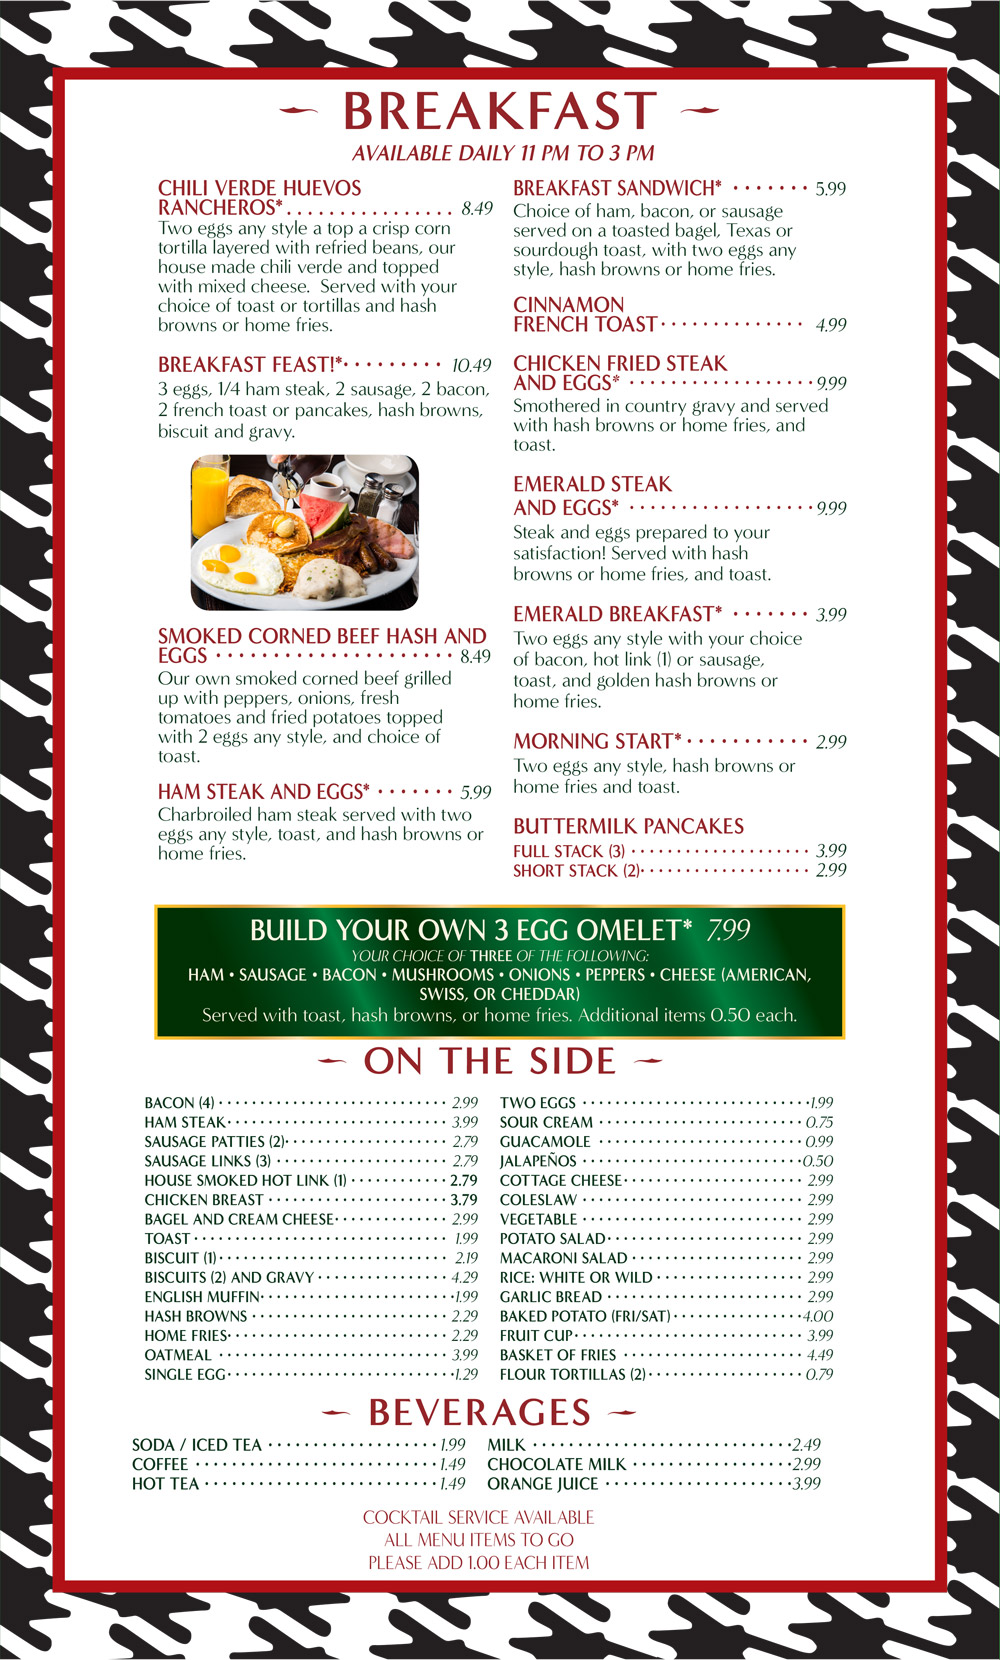 Grille Menu Breakfast